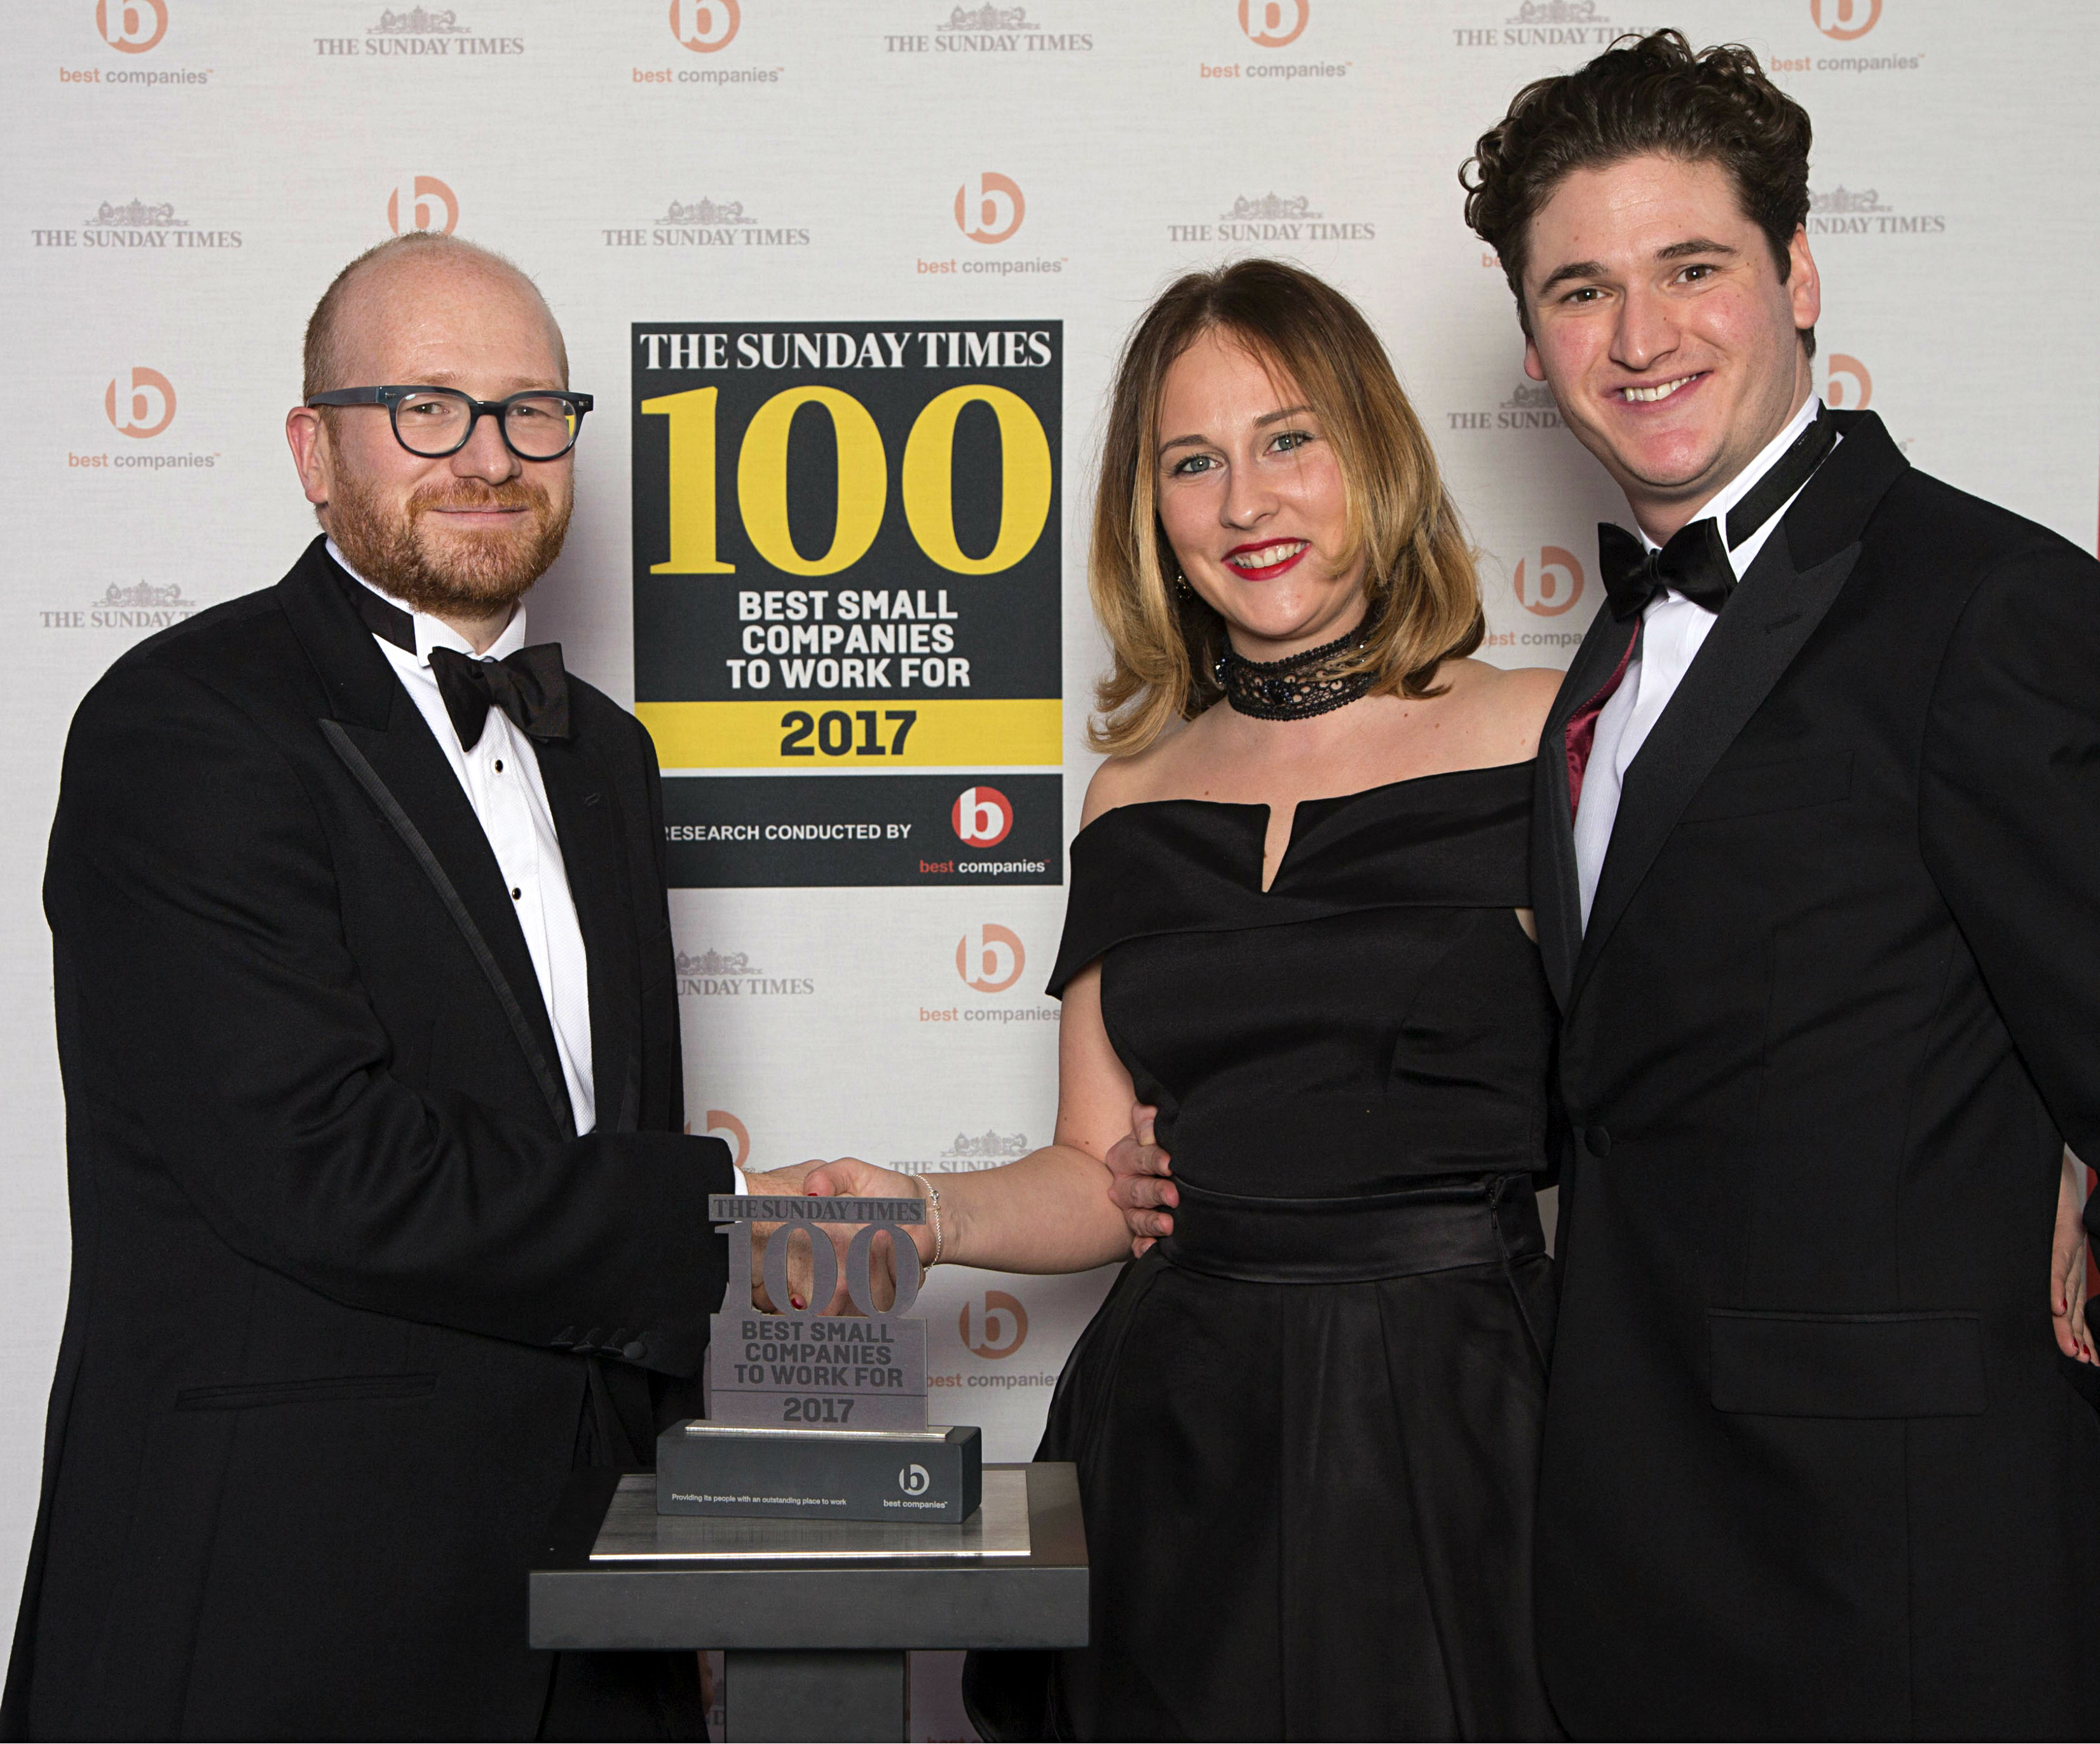 the sunday times 100 best small companies award for 2017